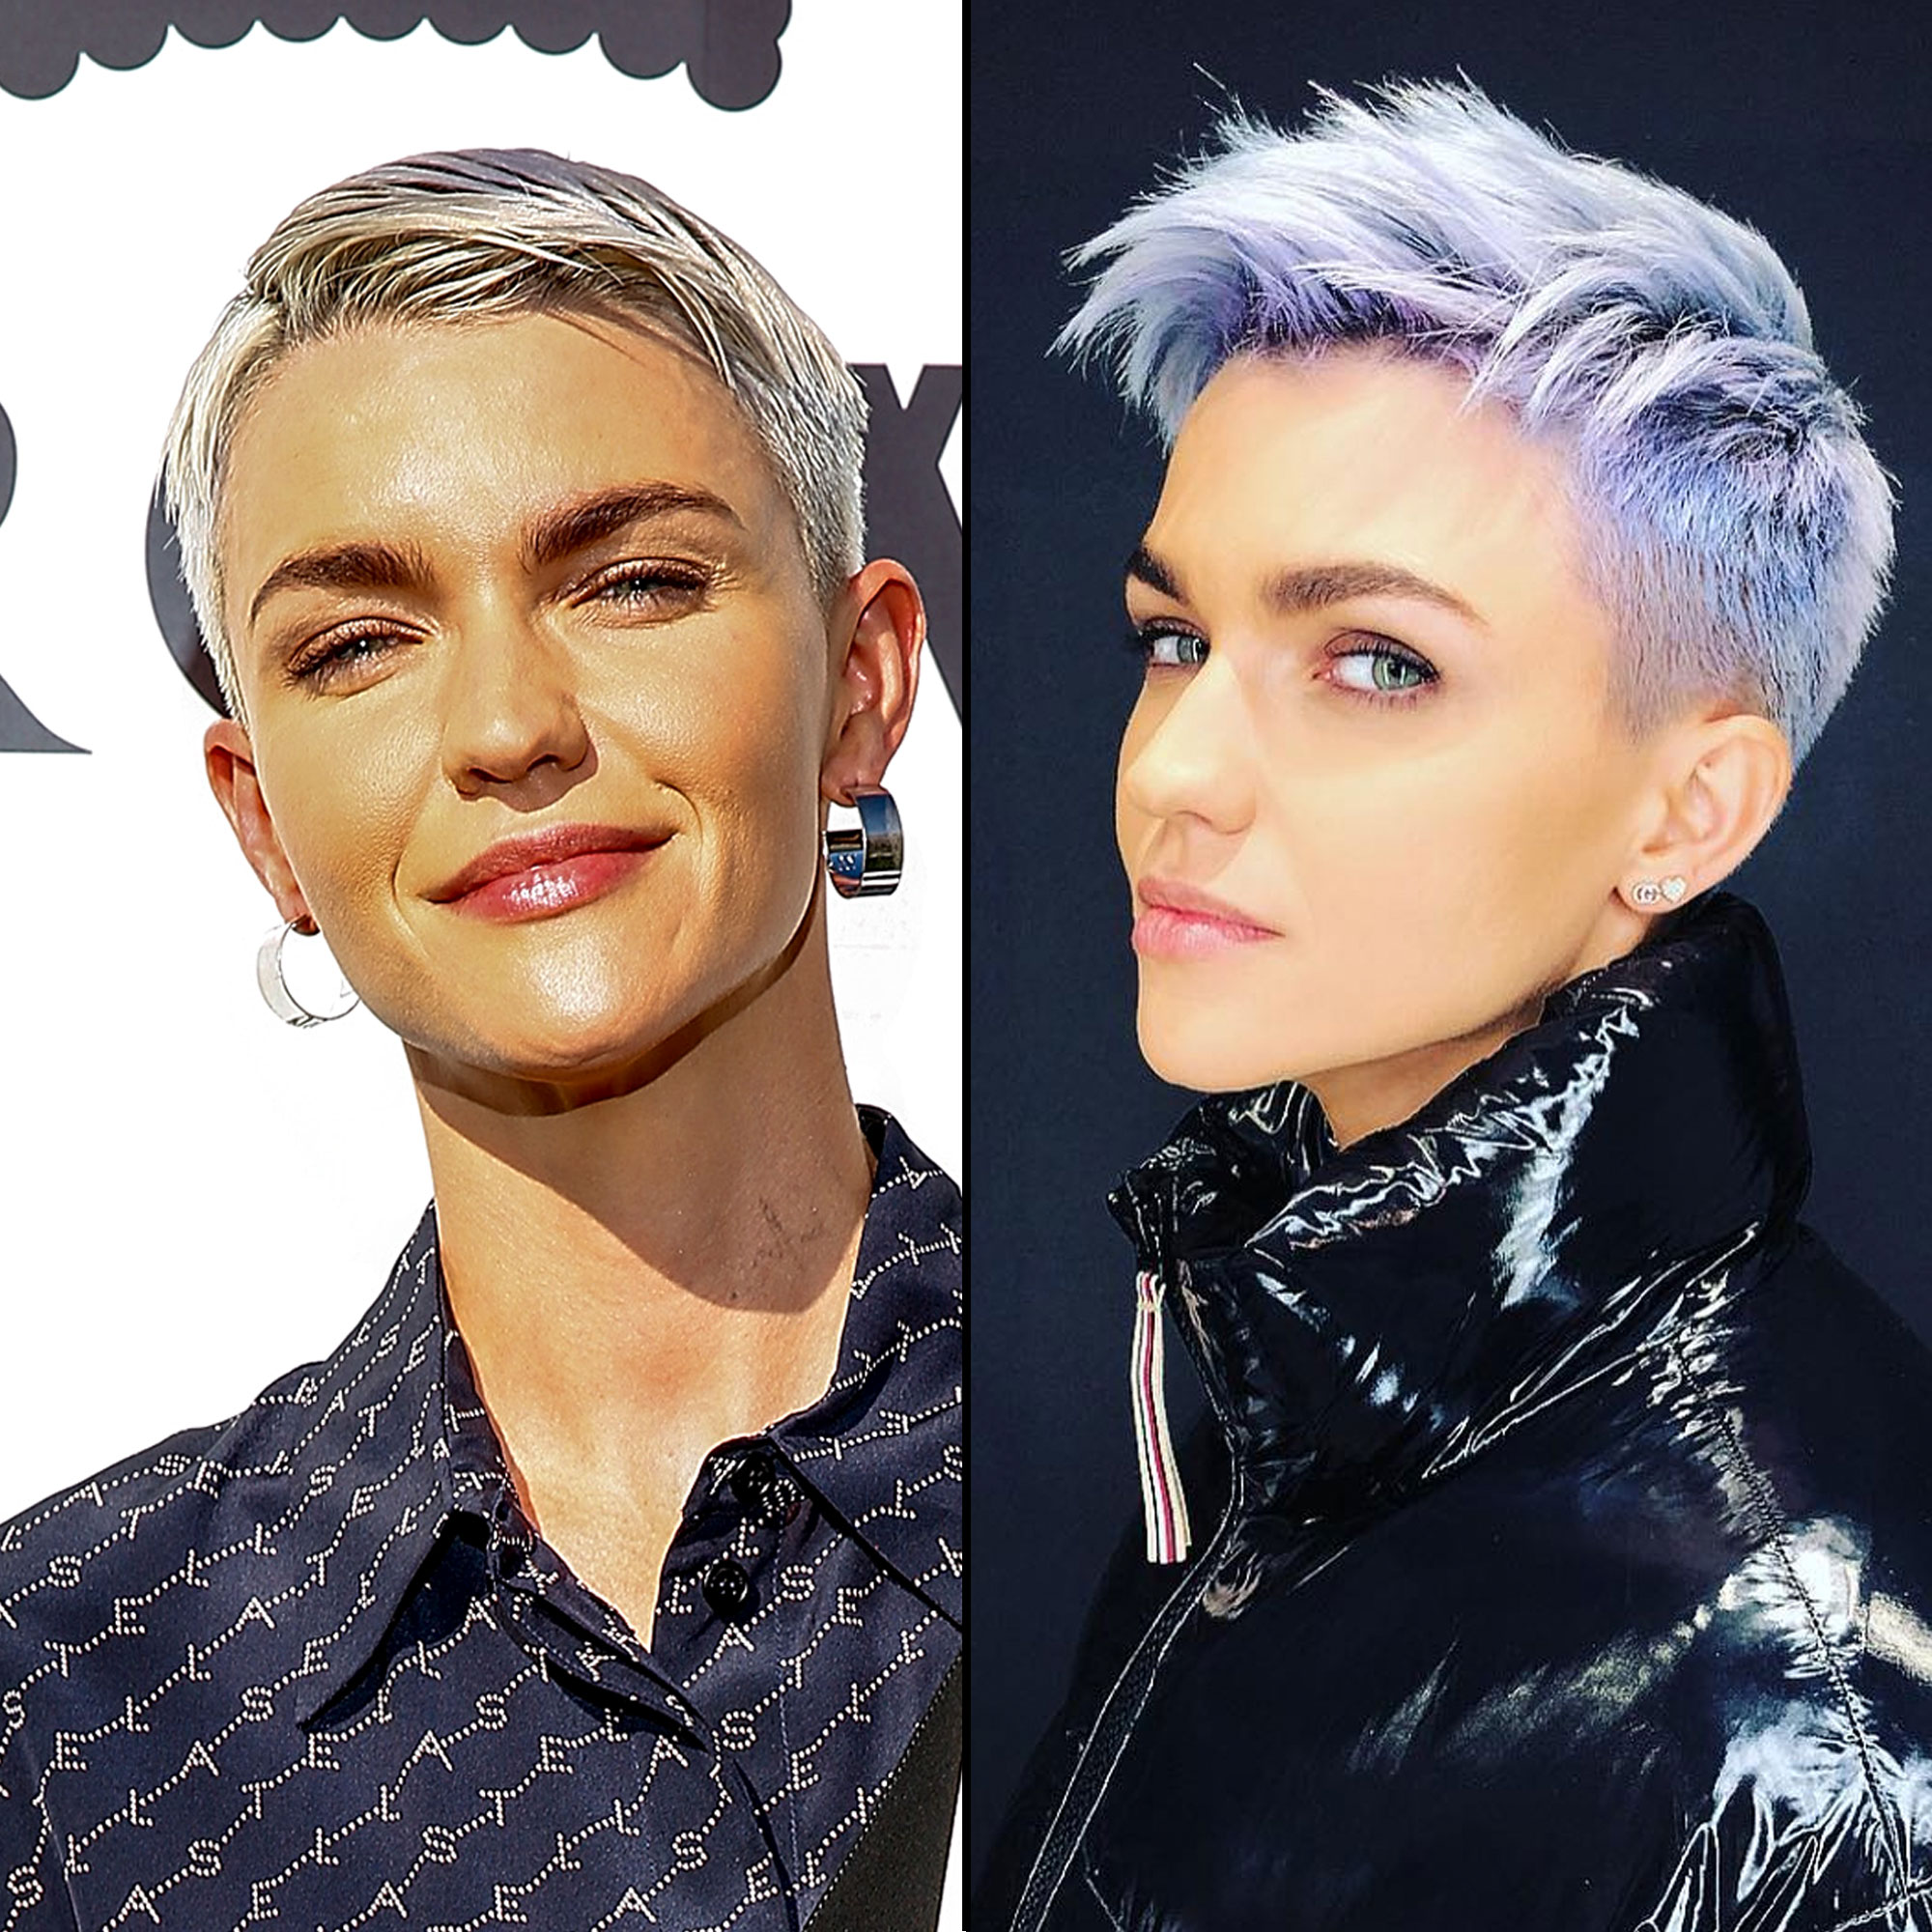 Ruby Rose - After starting off the year with a silvery hue, the Pitch Perfect 3 star has embraced the pastel tress trend with a new violet shade. Celeb hairstylist Riawna Capri shared on Instagram that she used Joico Color Intensity in Lilac with a bit of Violet Pearl to create the multi-dimensional hue that is one of many the fearless actress has sported over the years.